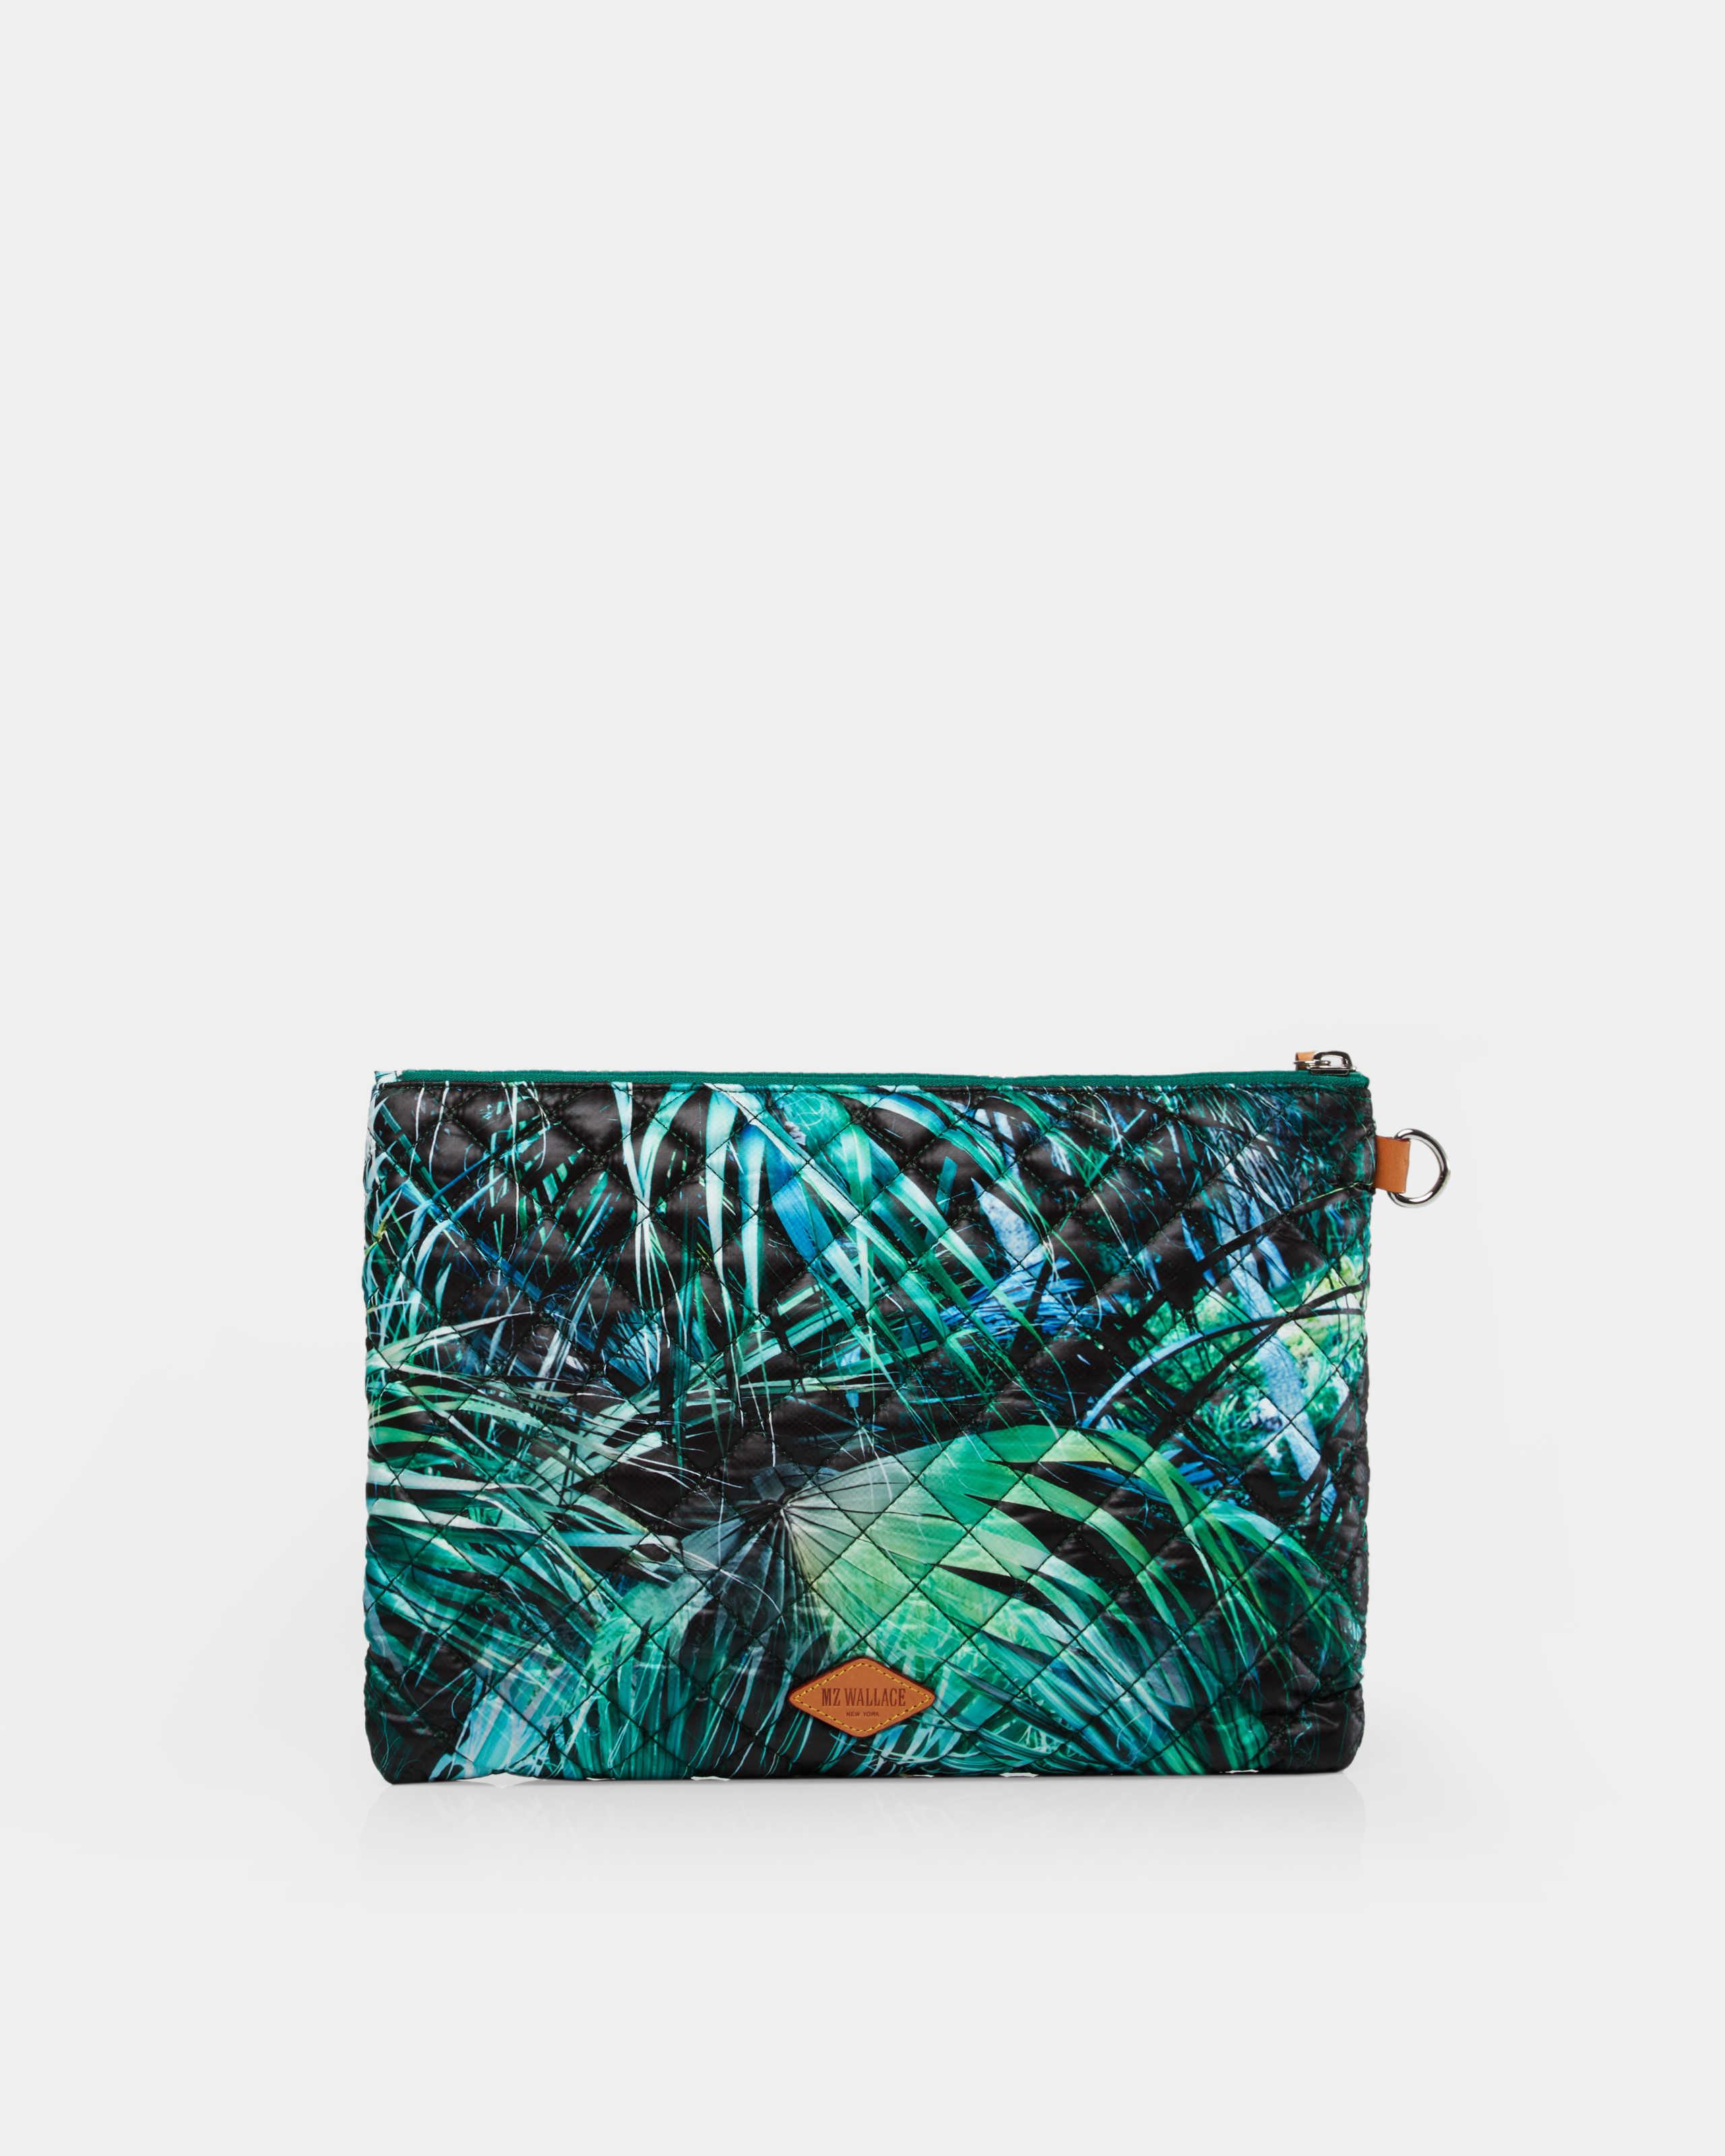 MZ Wallace Paradise Print Metro Pouch in Green - Lyst 930a9c6481b92